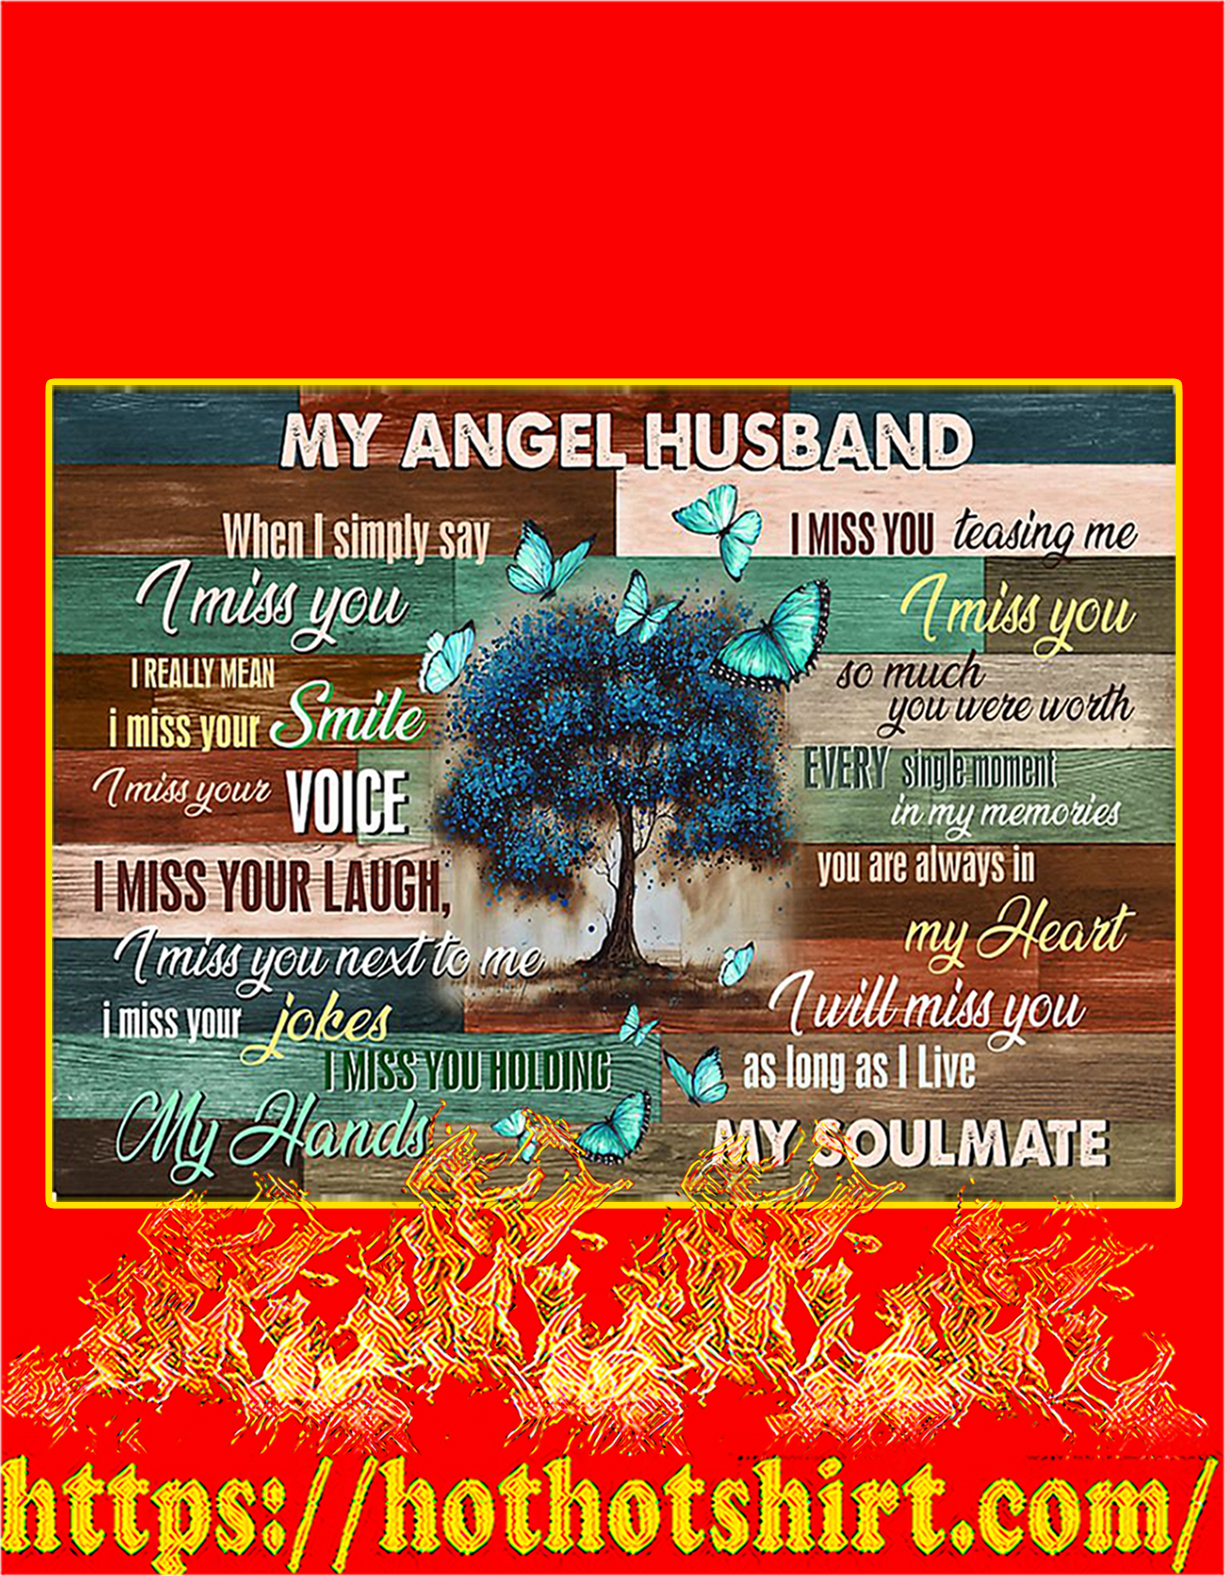 Butterfly my angel husband poster - A4